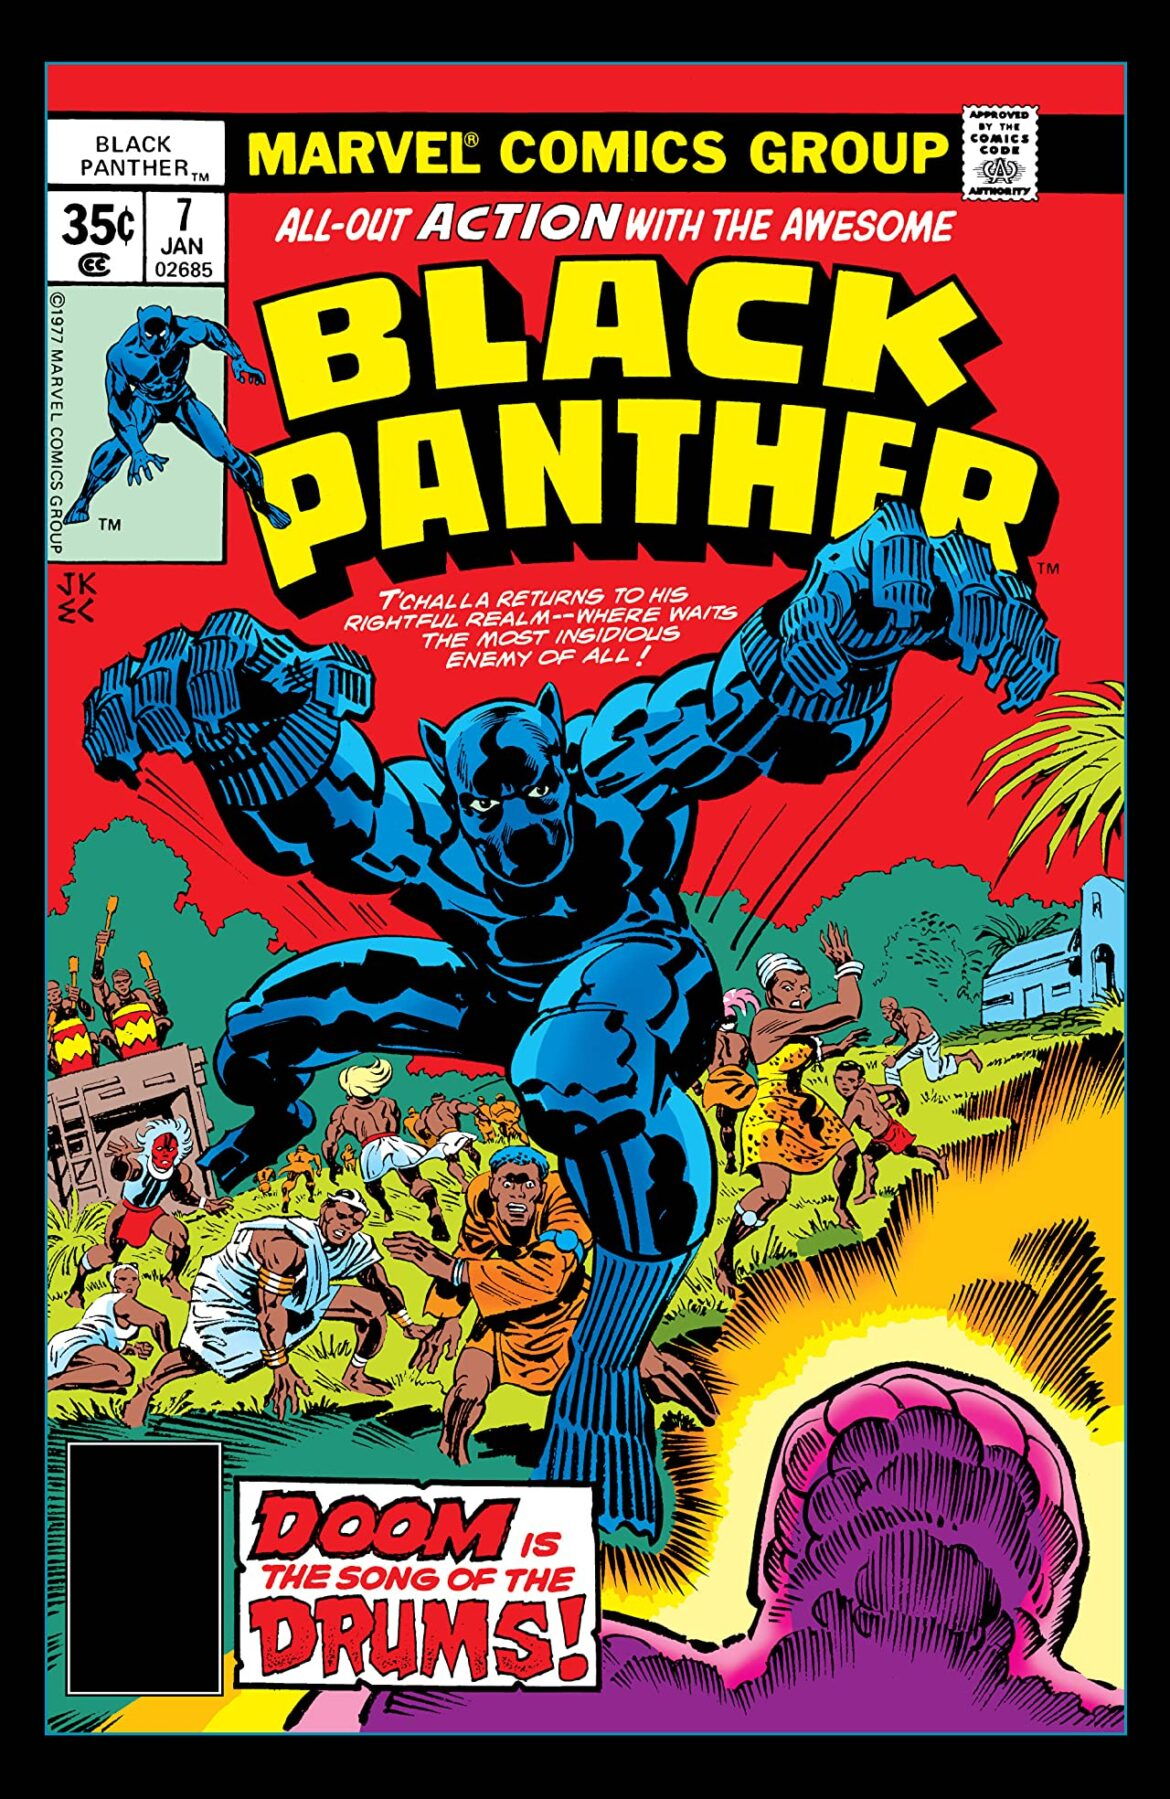 Individual Black Panther Comics Free on Comixology